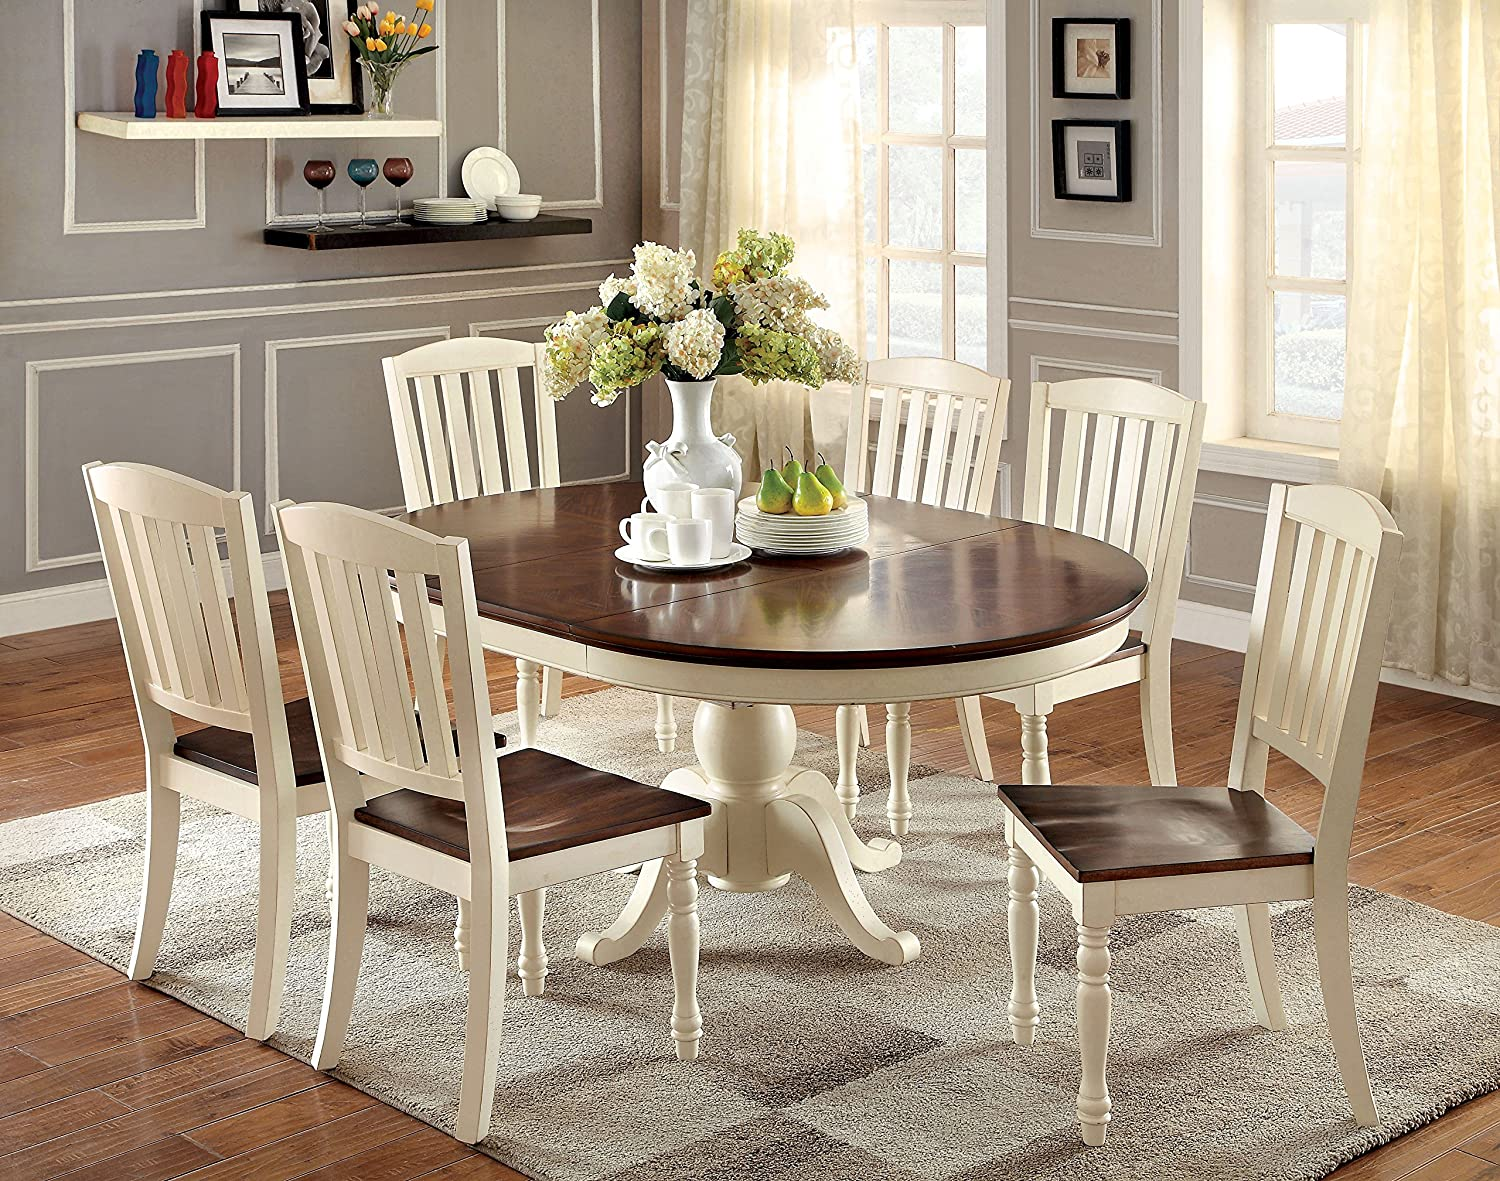 Awesome Dining Room Table And 6 Chairs Gallery Liltigertoo